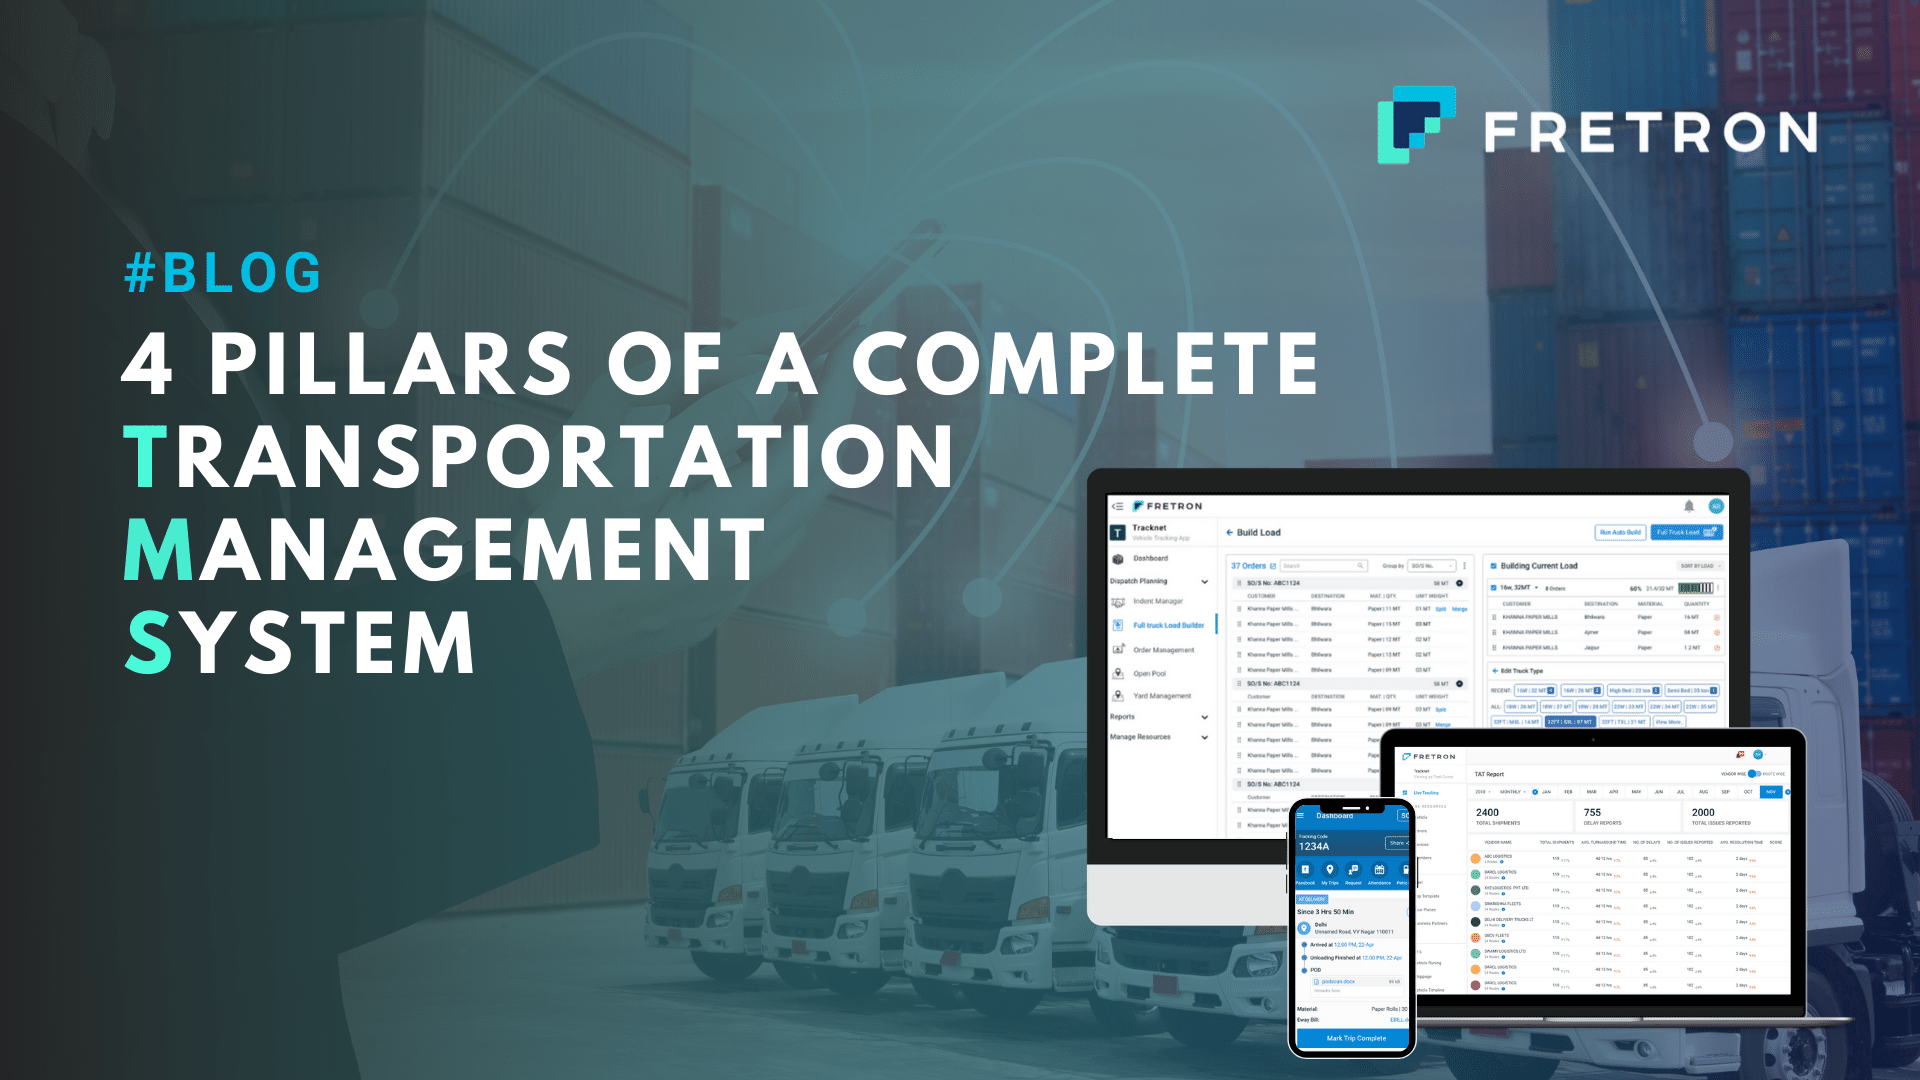 4 Pillars of a Complete Transportation Management System | Fretron Blog